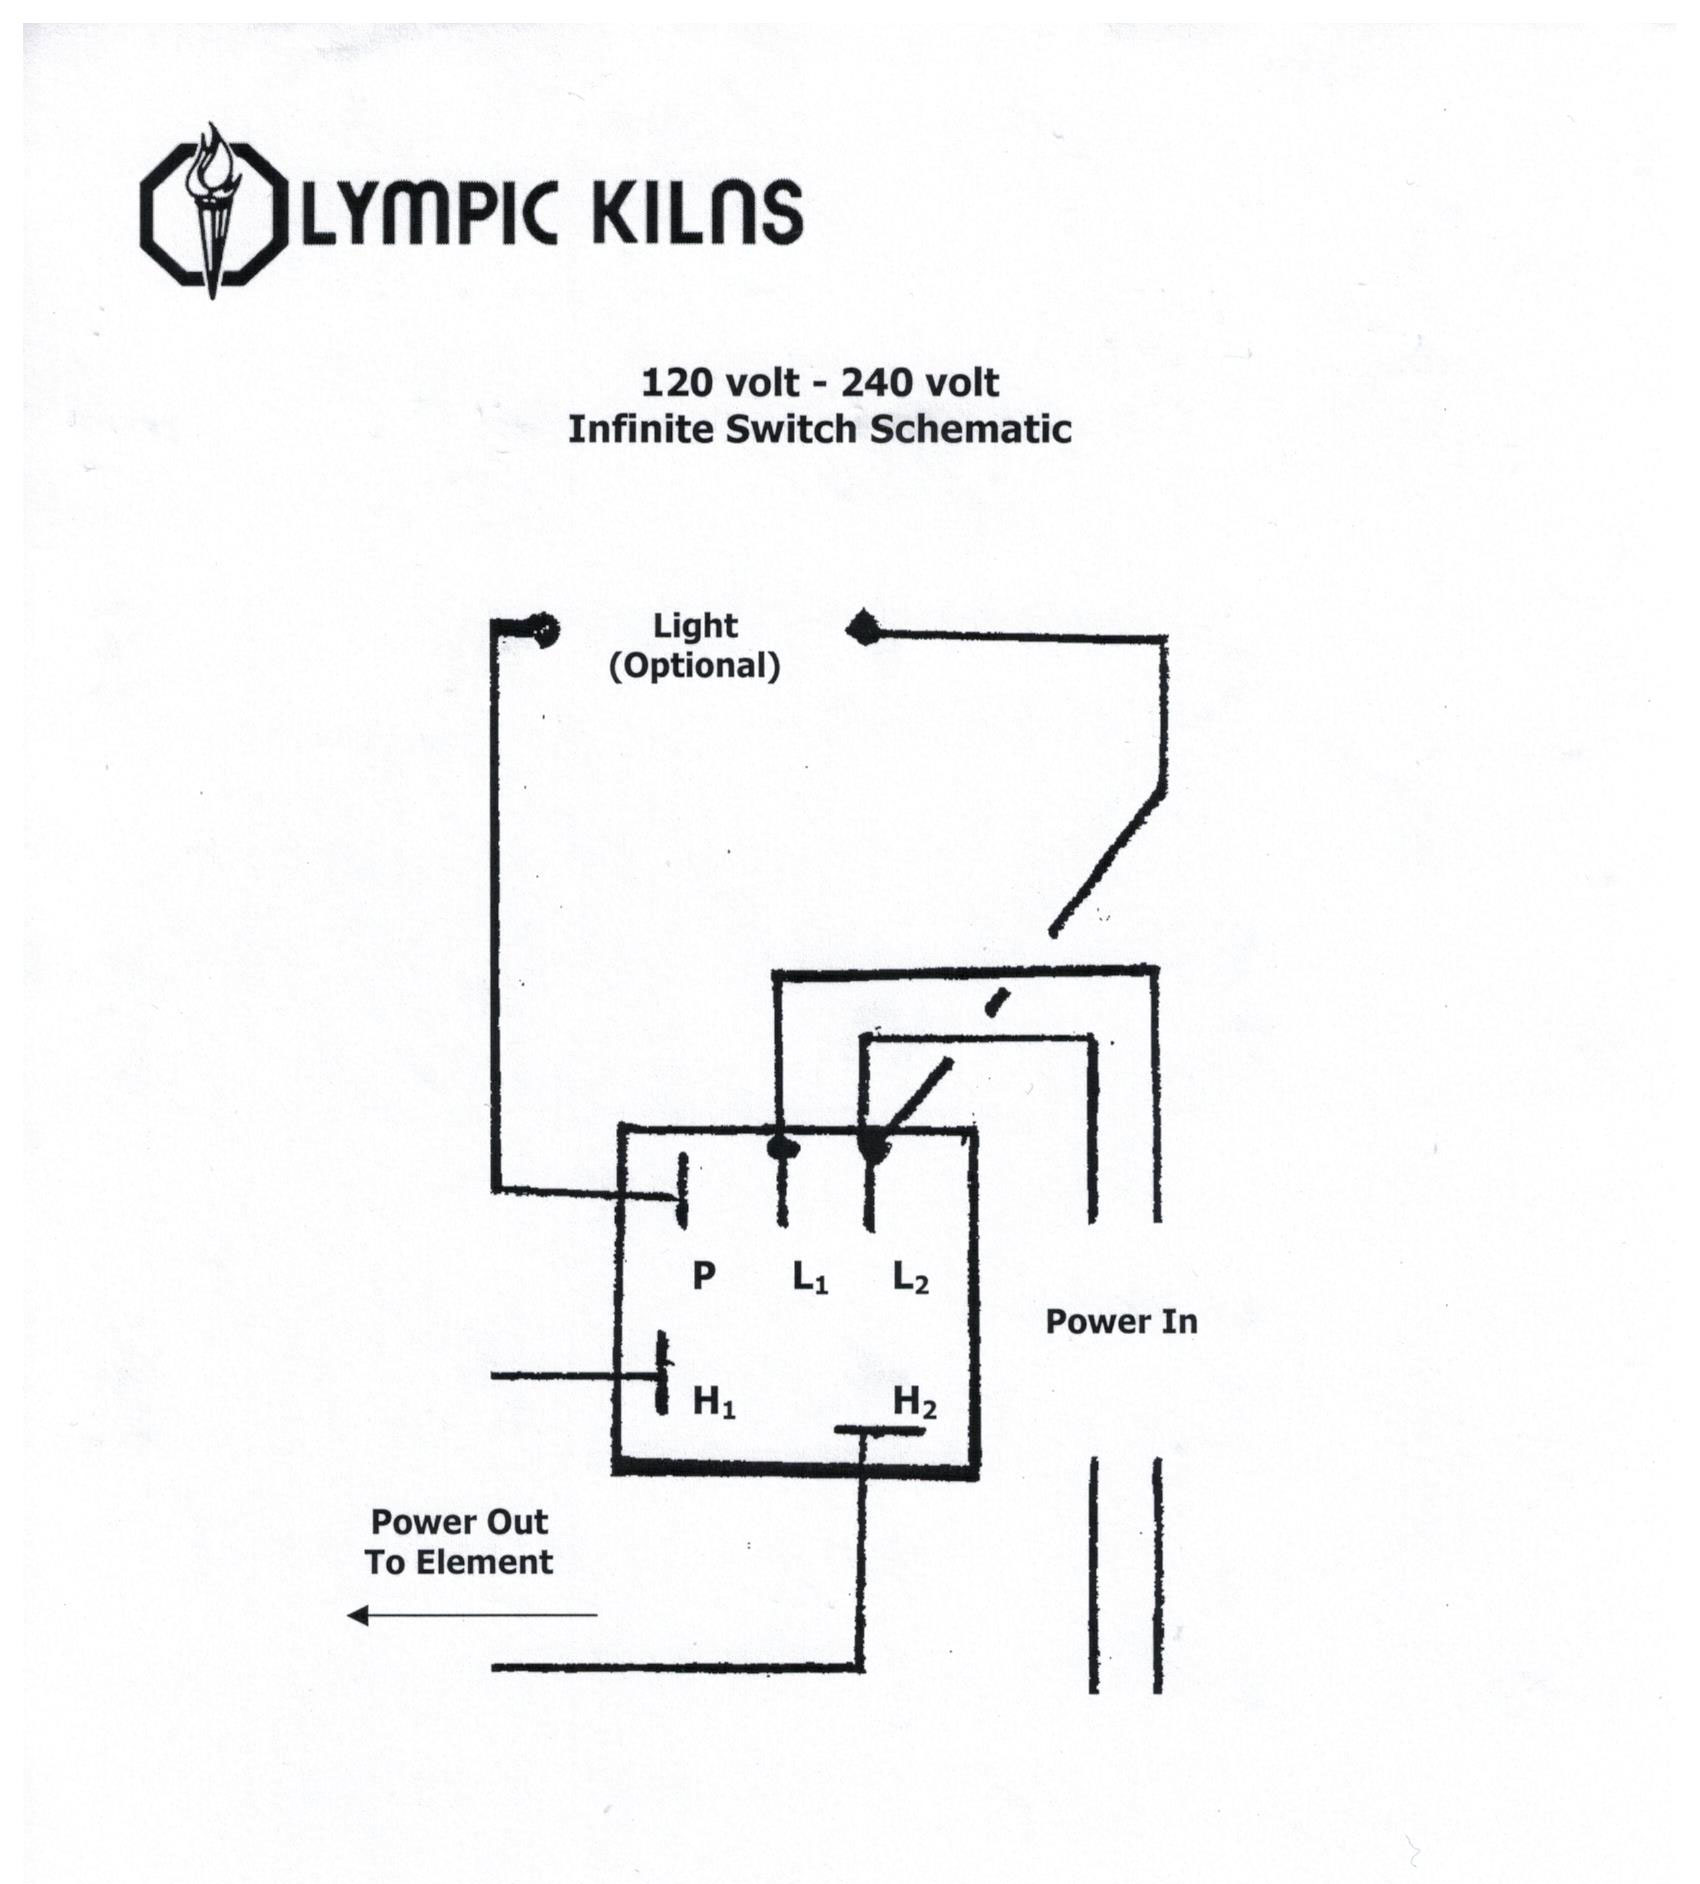 infinite switch paragon kiln elements with element connectors clay king com paragon kiln wiring diagram at gsmx.co